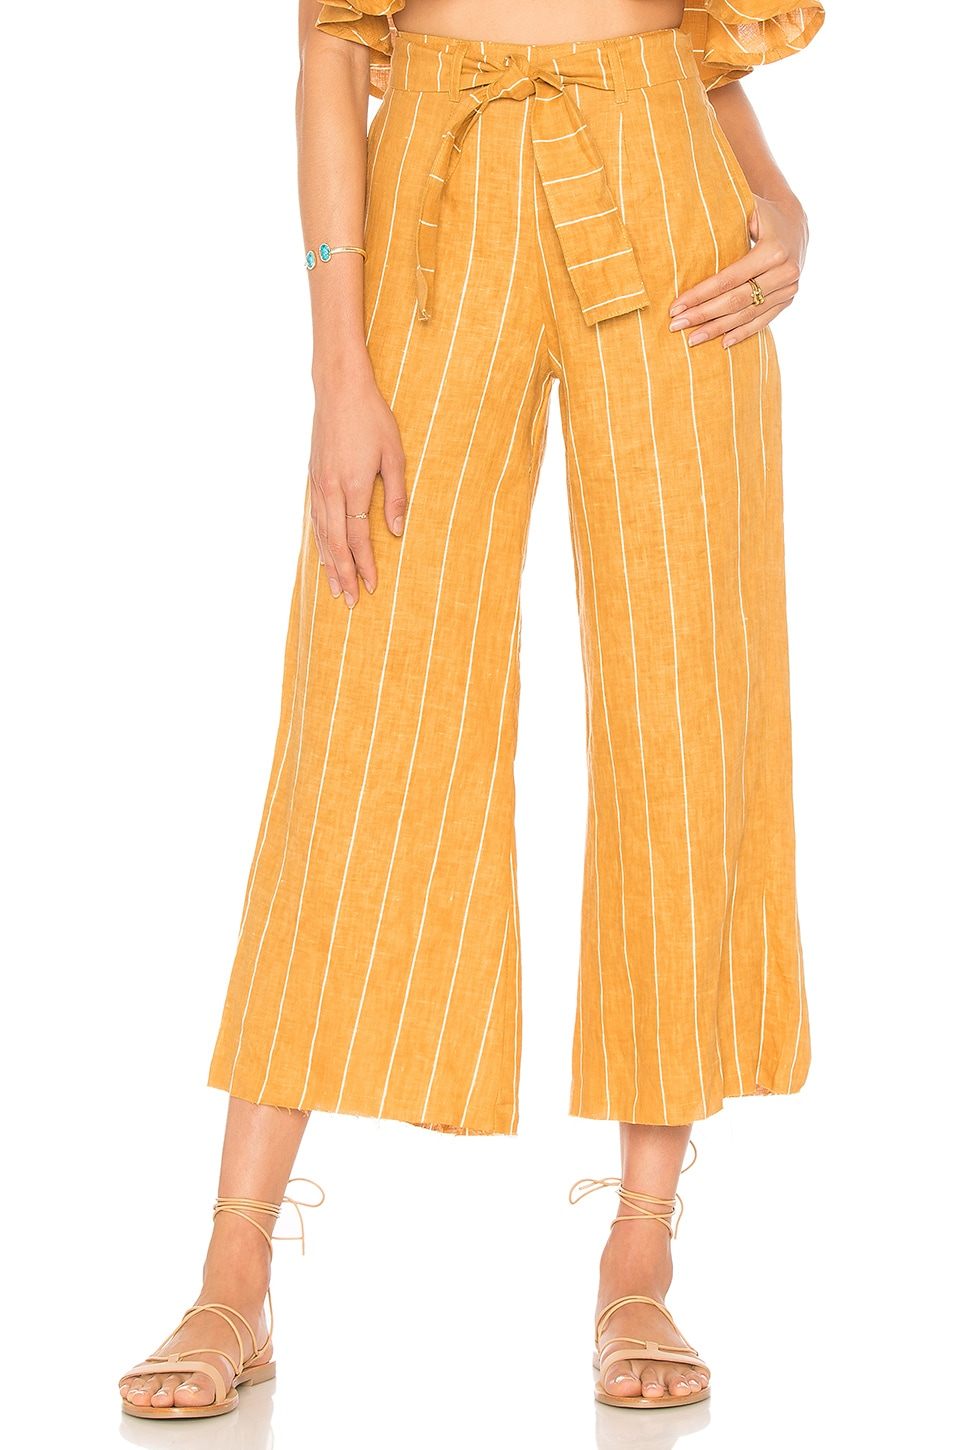 FAITHFULL THE BRAND Como Wide Leg Crop Linen Pants in Mustard